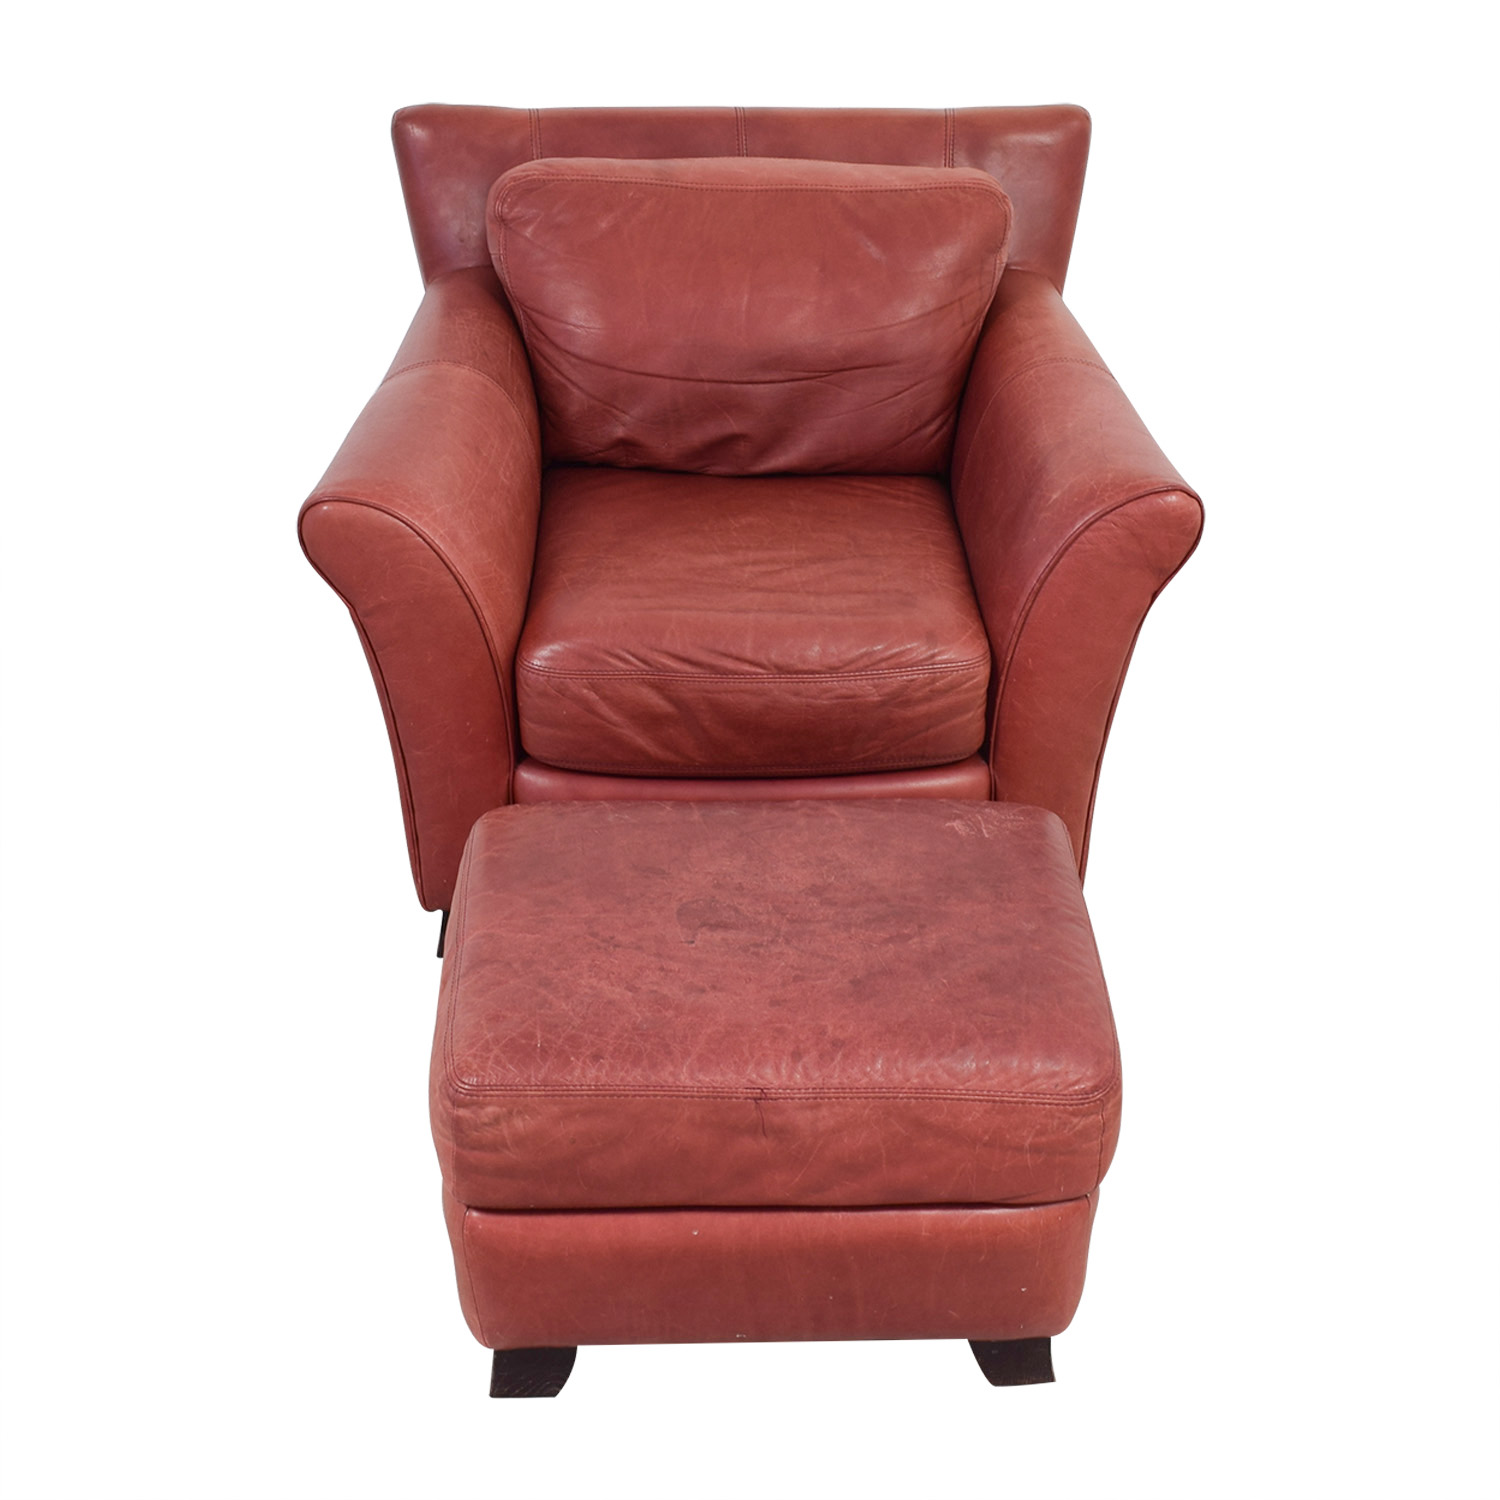 Leather Chairs And Ottomans Sale 73 Off Palliser Palliser Red Leather Chair And Ottoman Chairs